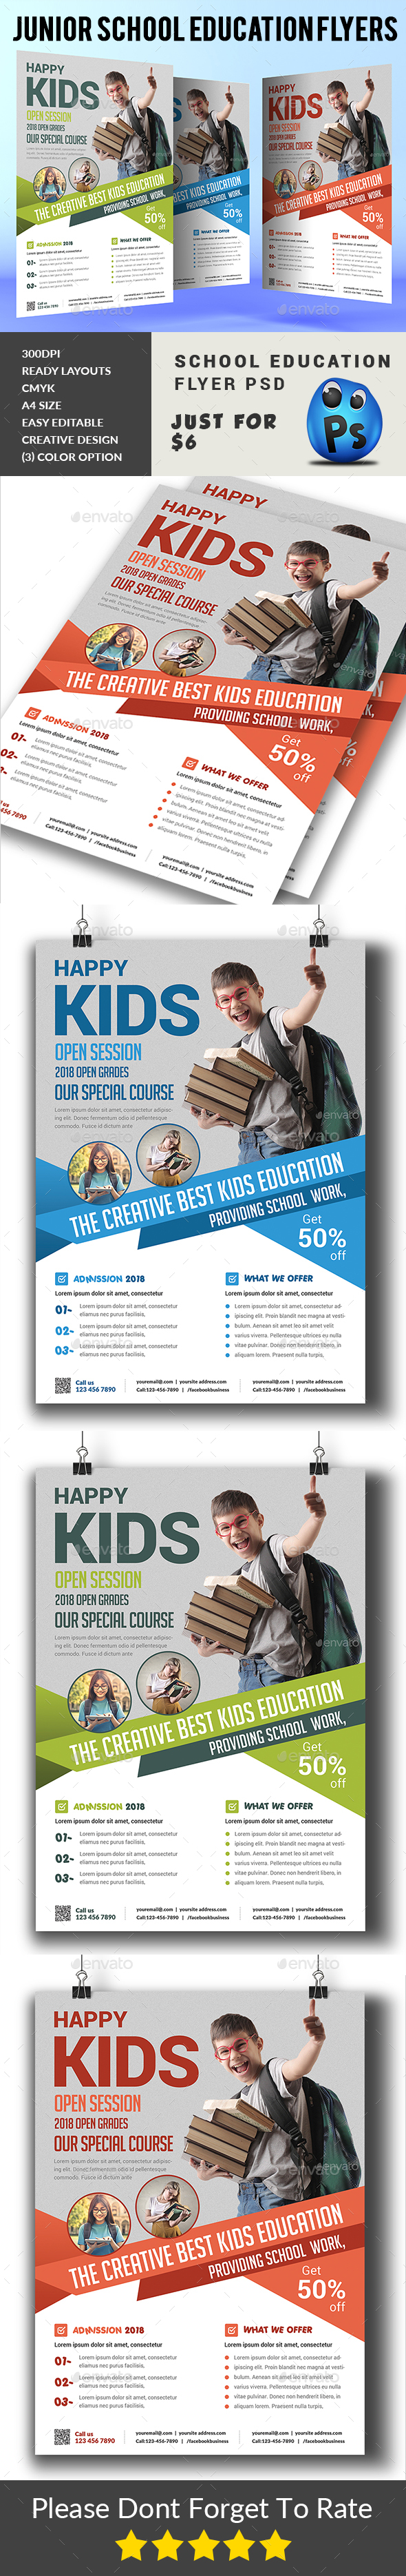 Junior School Education Flyers - Corporate Flyers